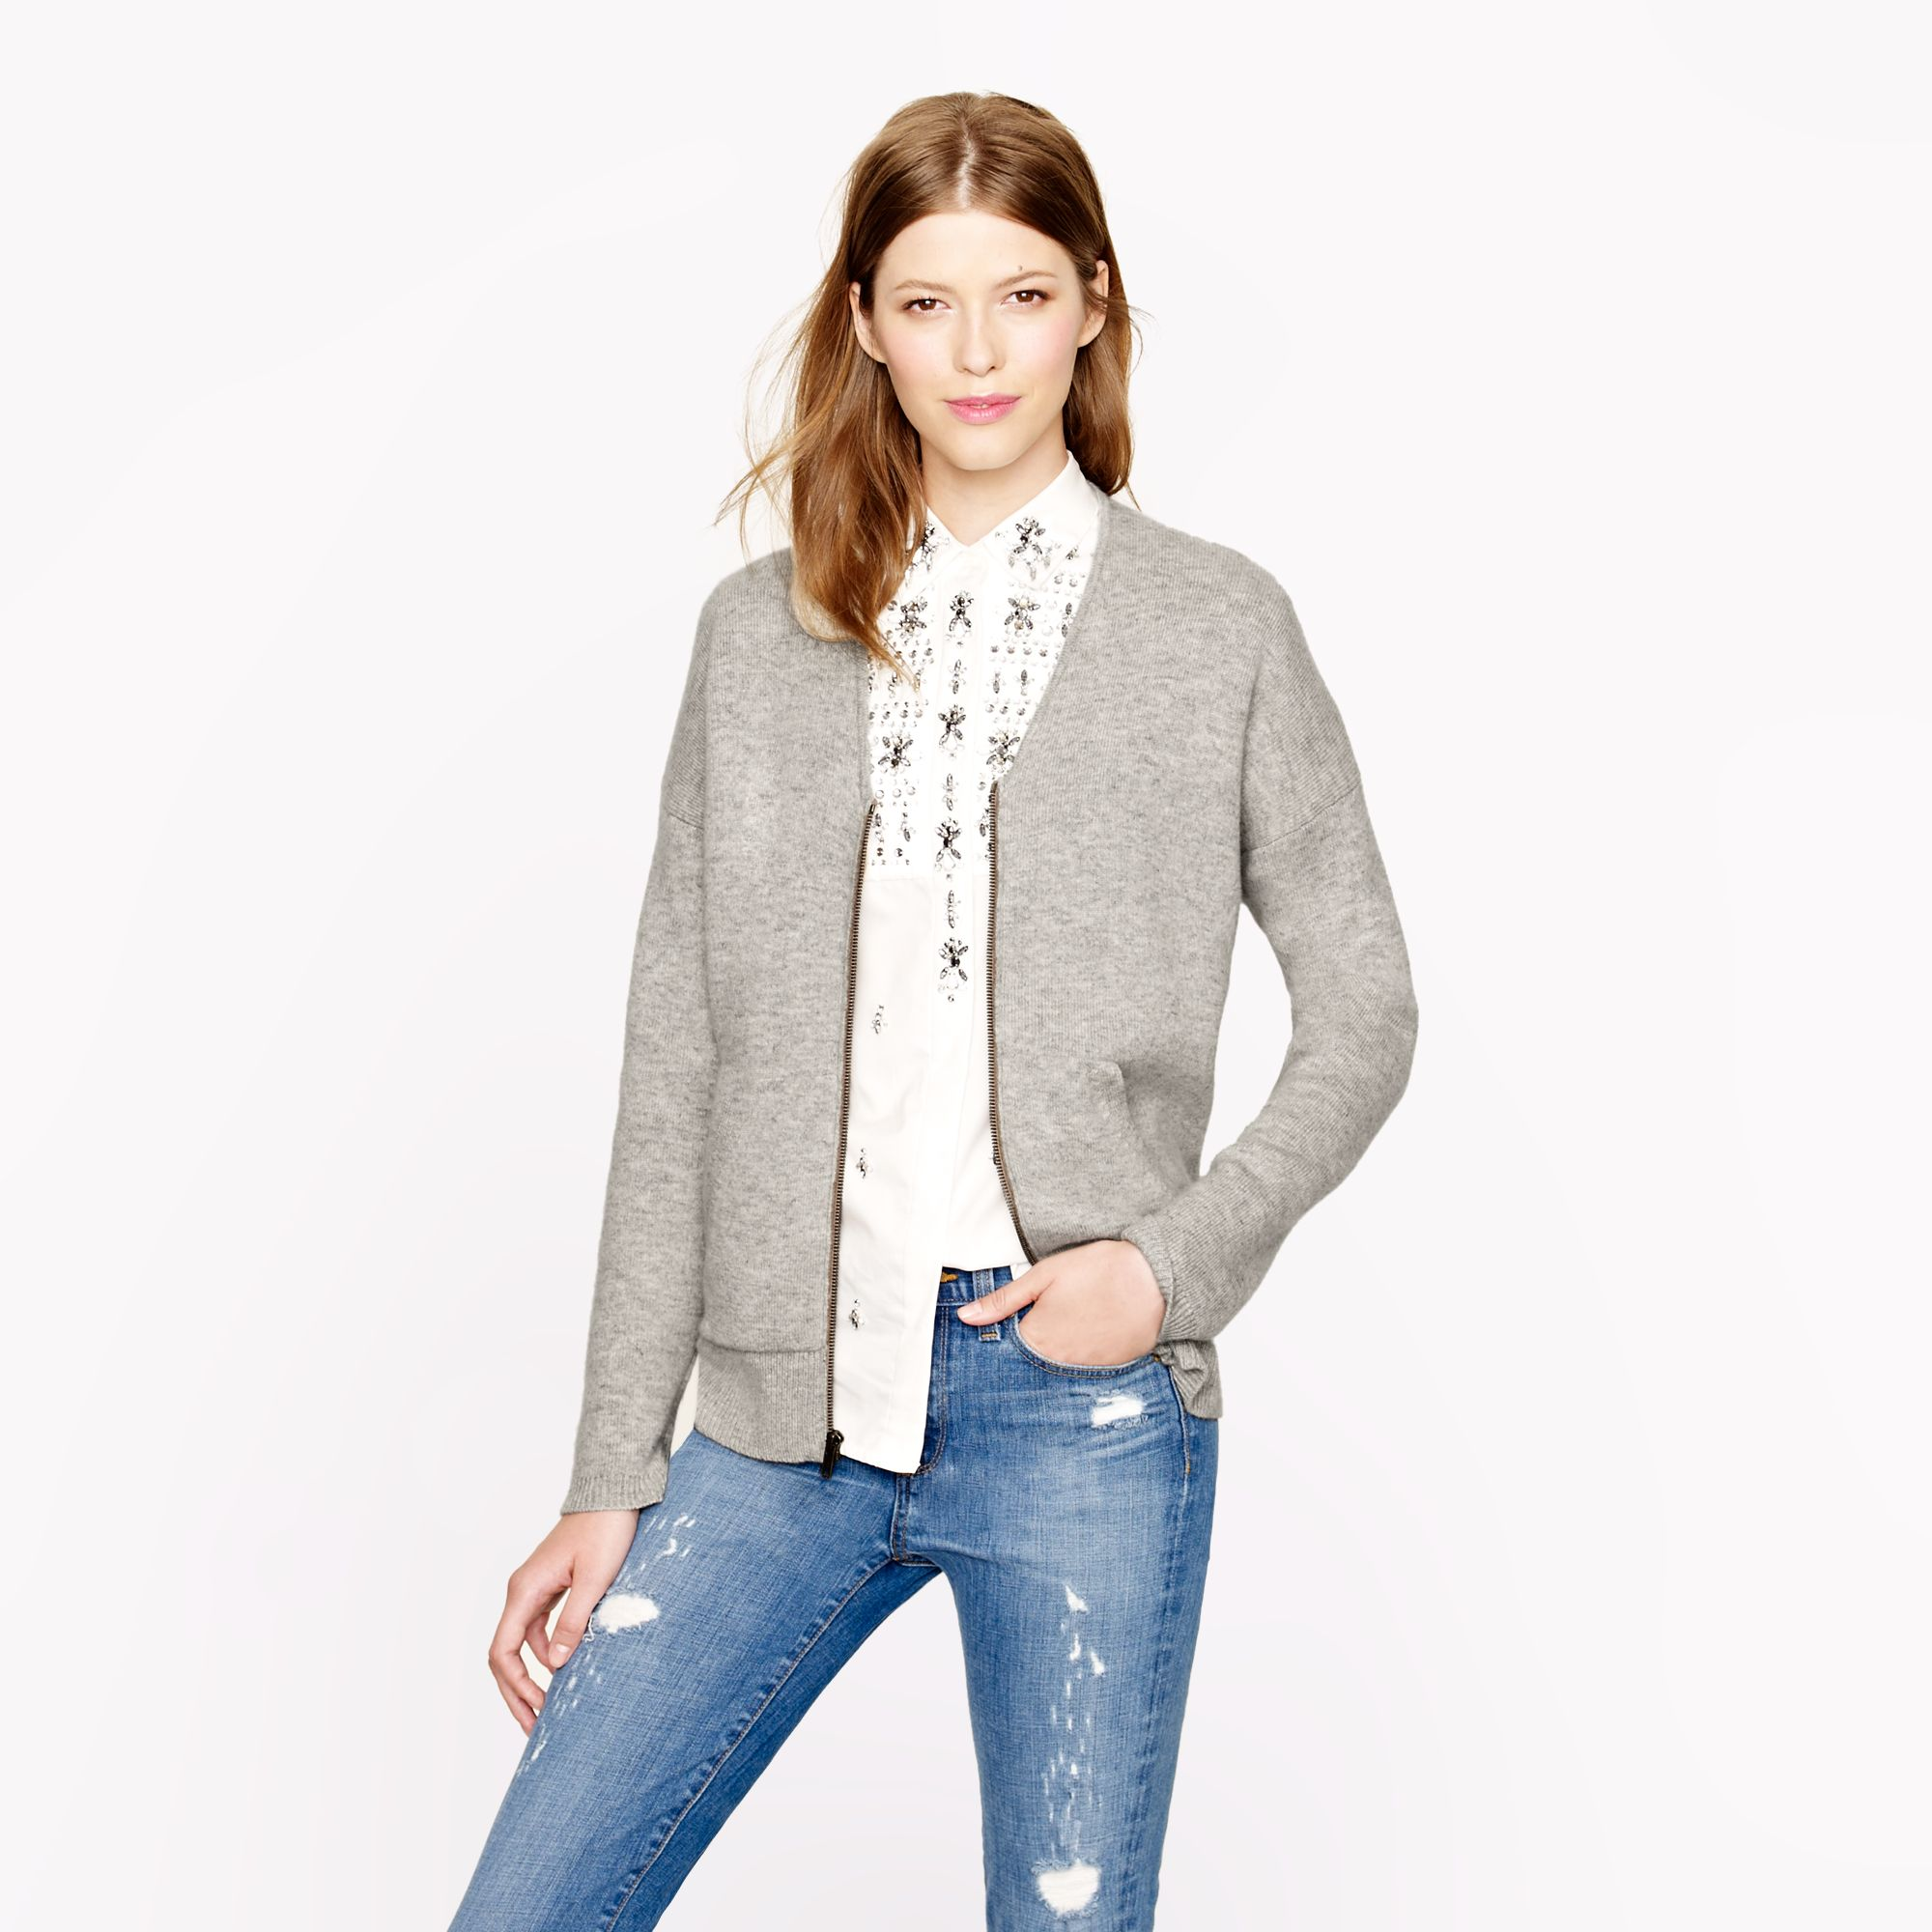 892bc261c Lyst - J.Crew Collection Bonded Cashmere Zip Sweater-jacket in Gray